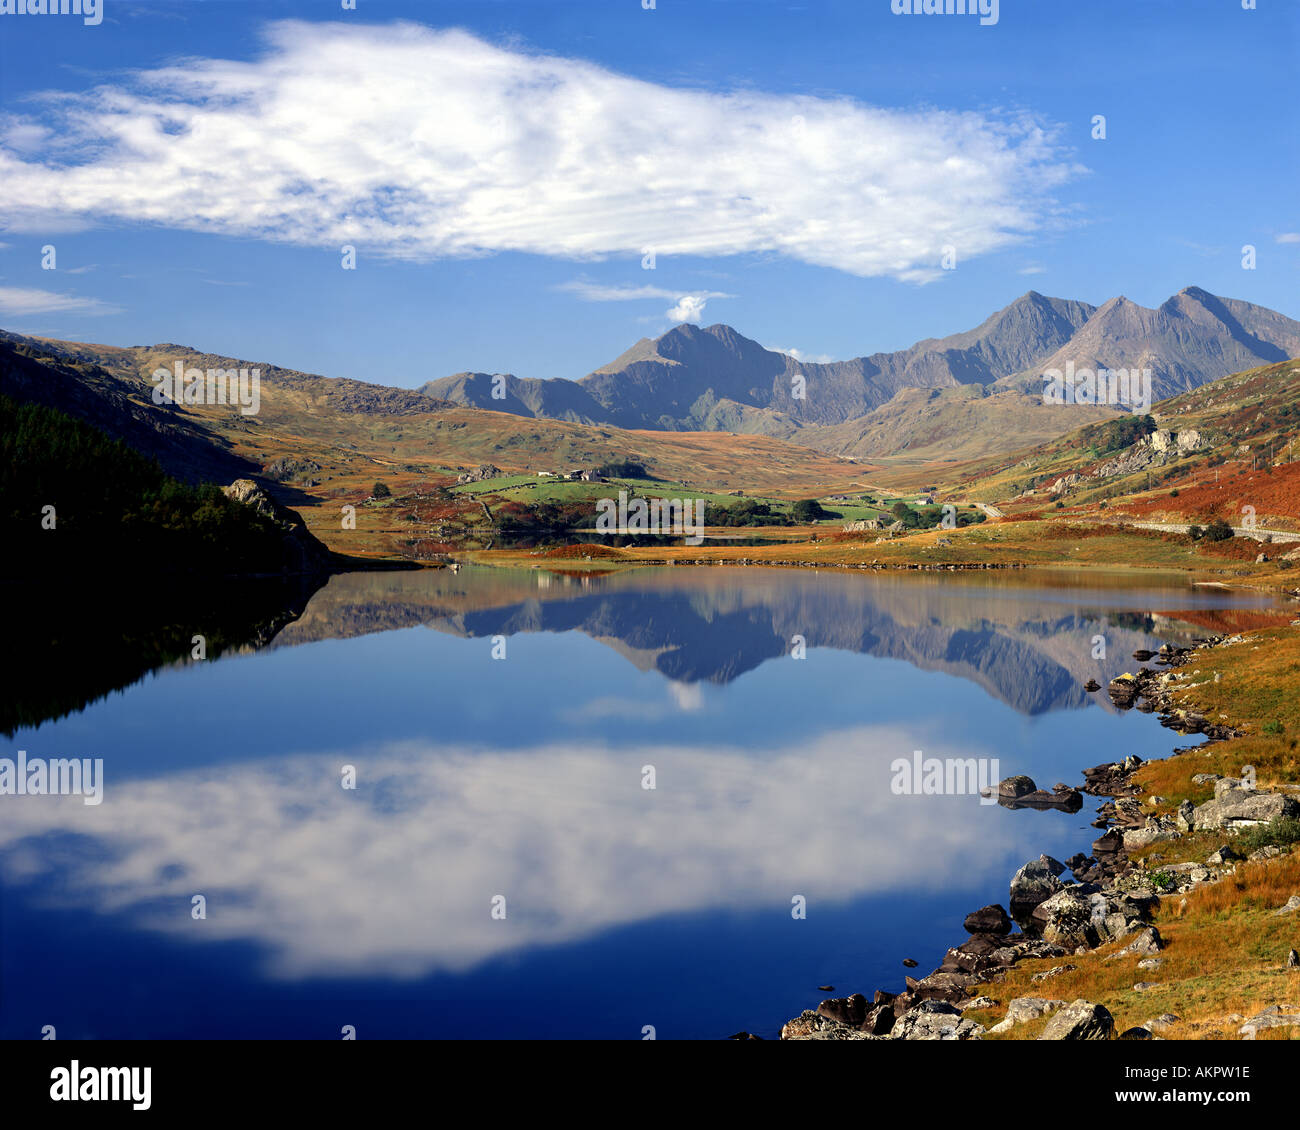 GB - WALES: Llynnau Mymbyr and Mount Snowdon - Stock Image